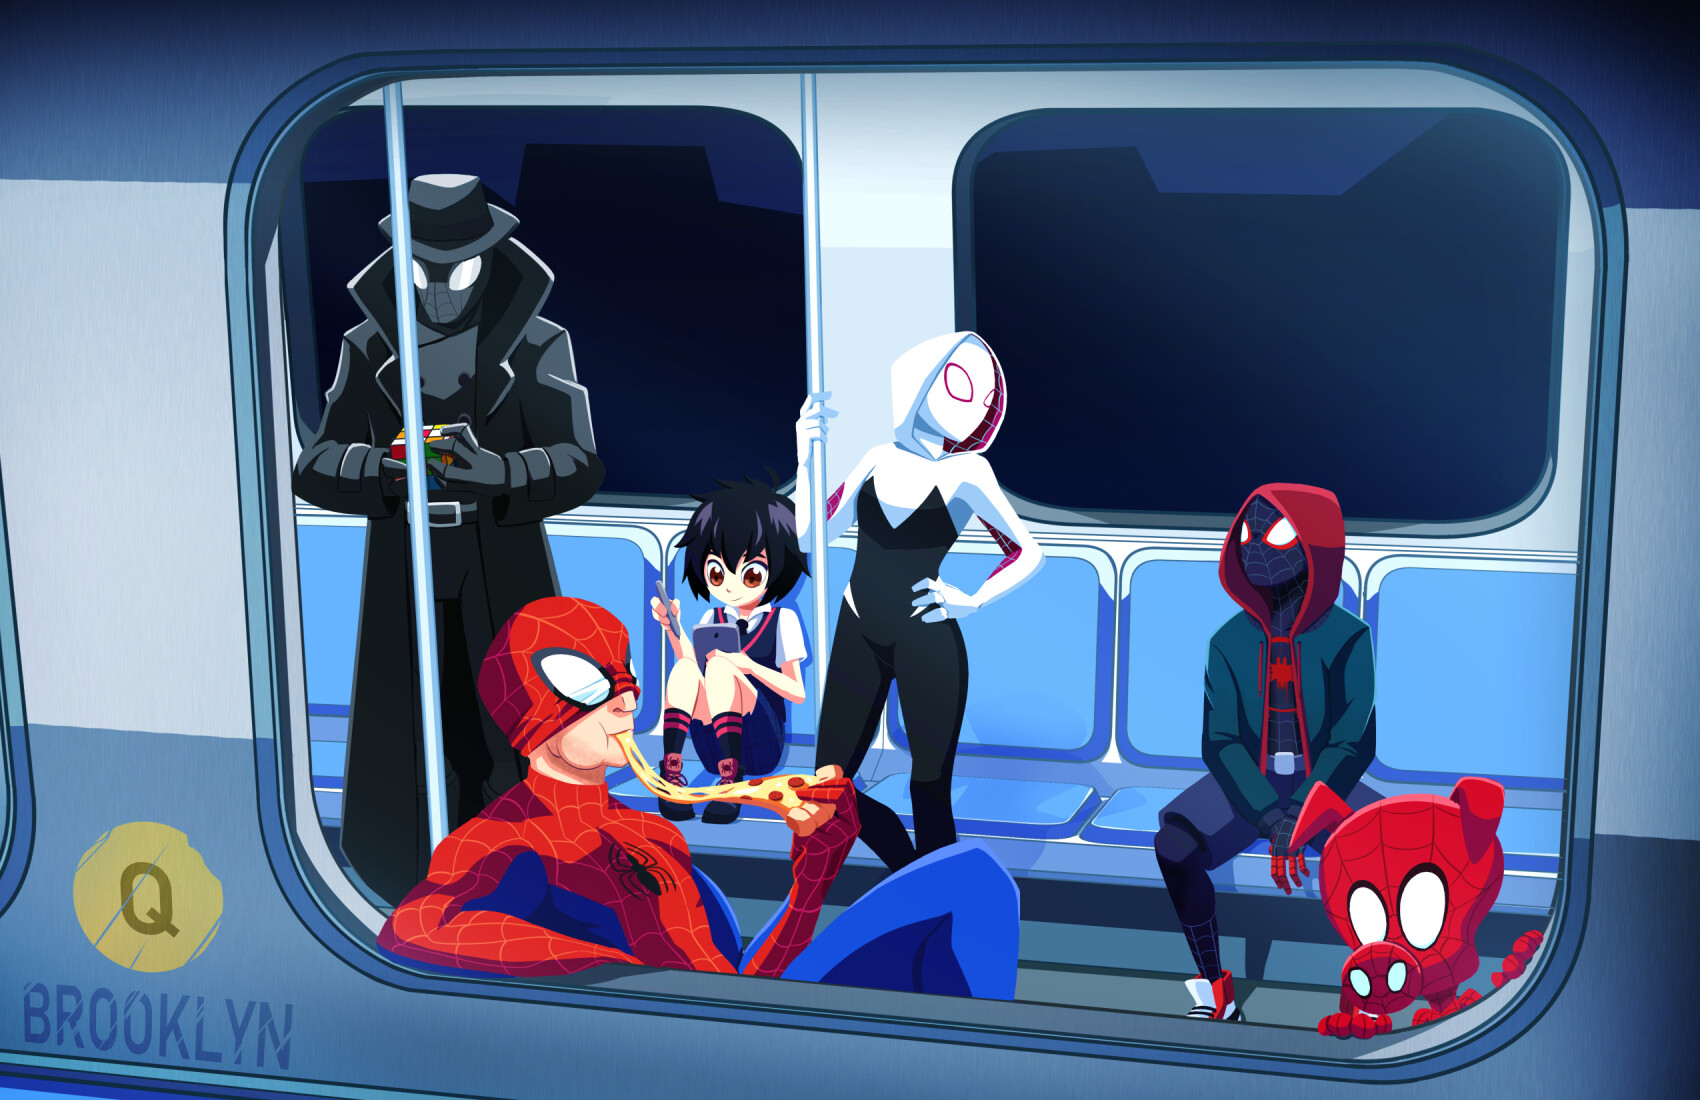 Lawrence patrick patchen iii into the spiderverse ee